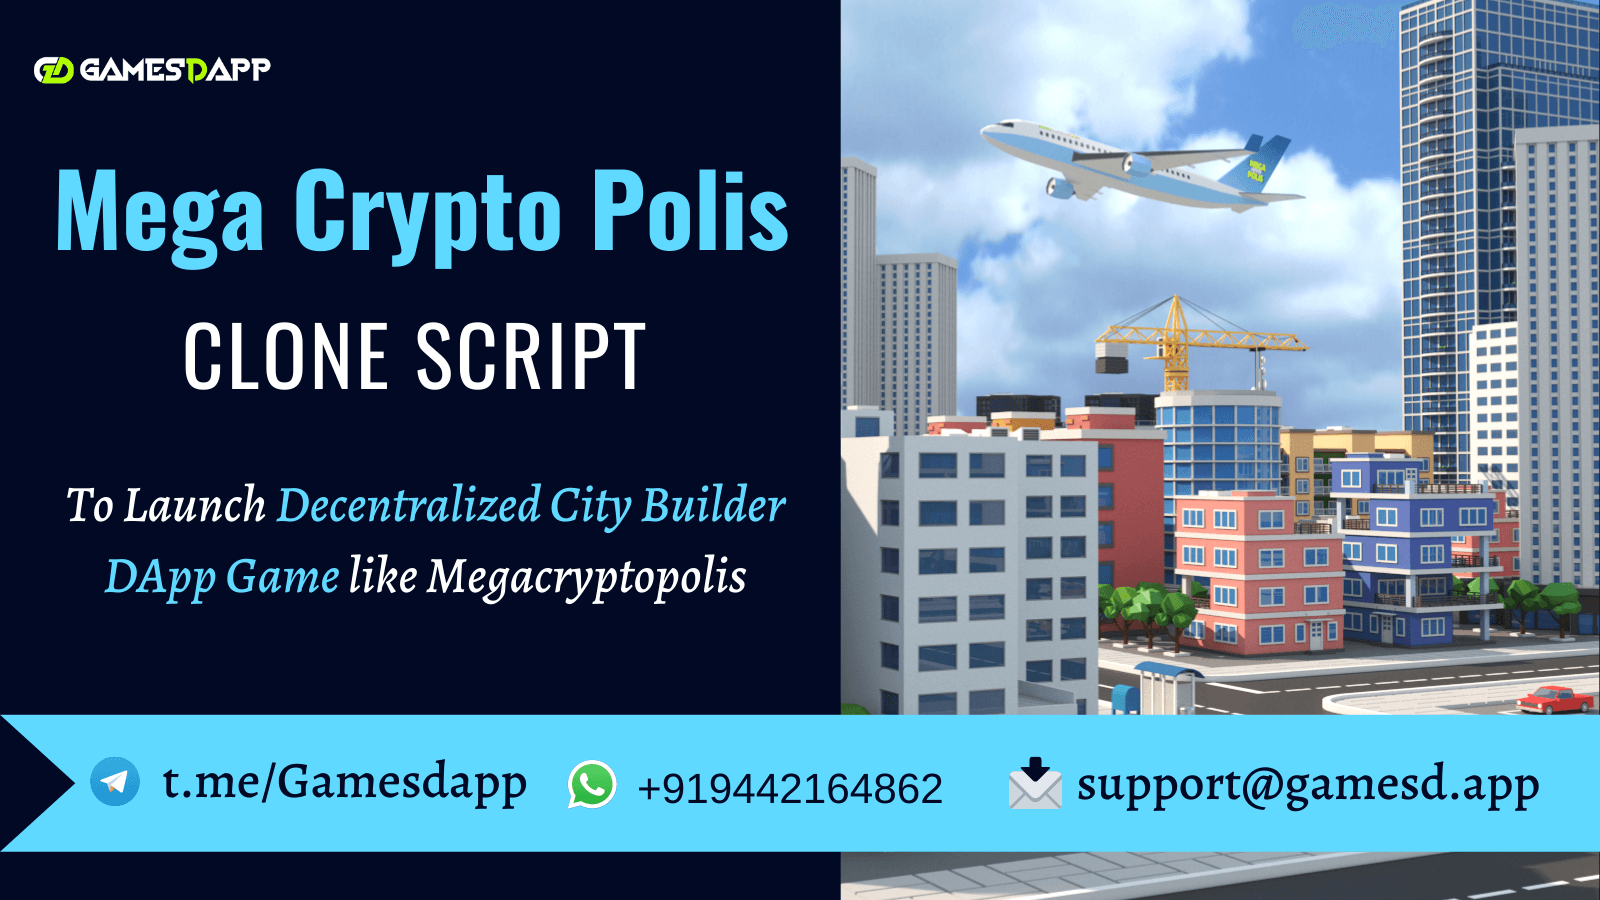 Megacryptopolis Clone Script - To Build Decentralized City Builder Strategy Game on Different Blockchain Networks